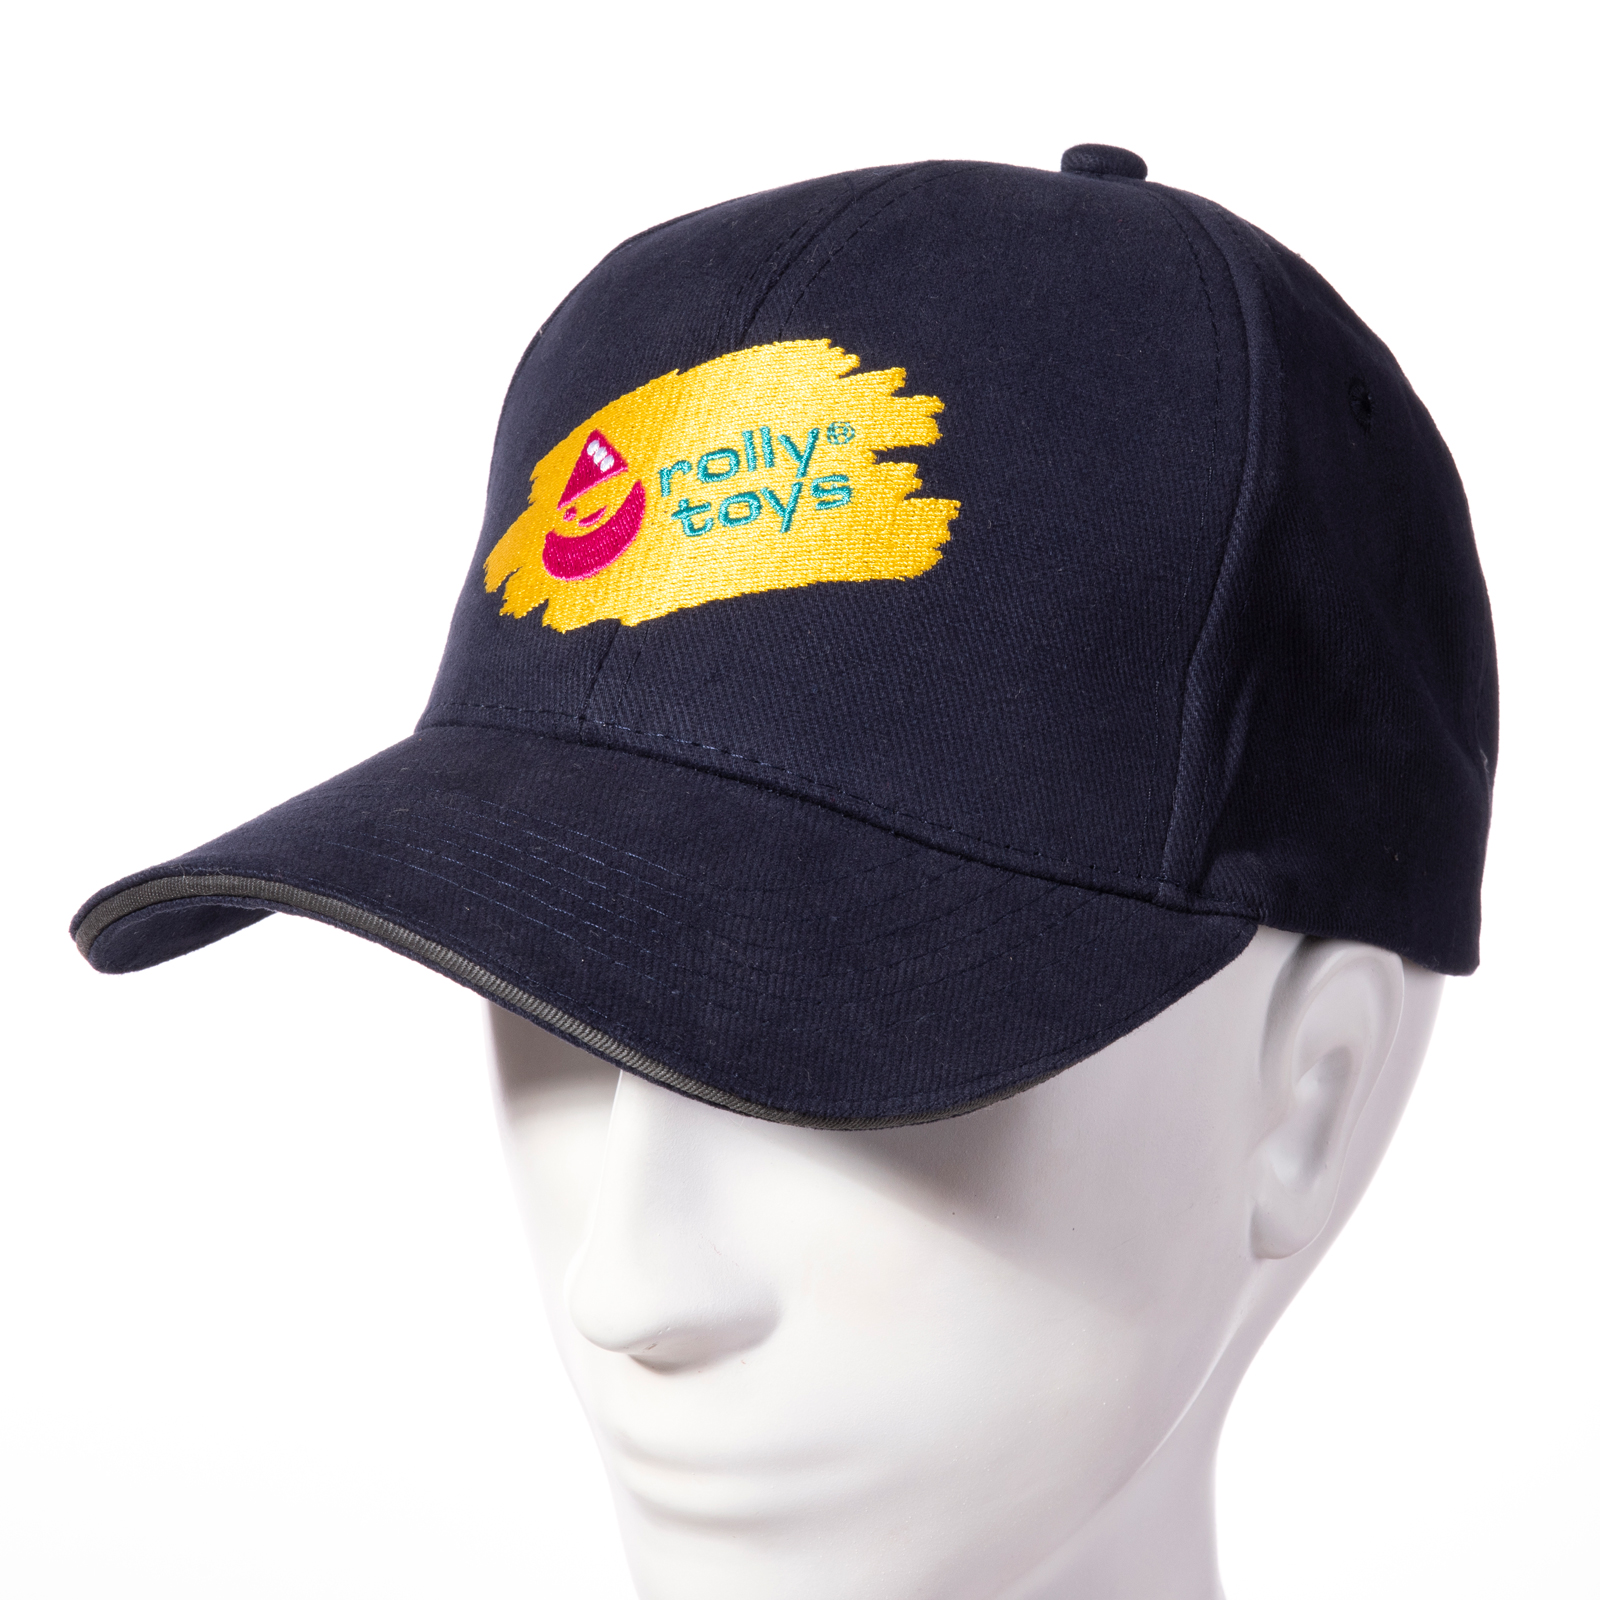 GORRA ROLLY AZUL - VISTA FRONTAL